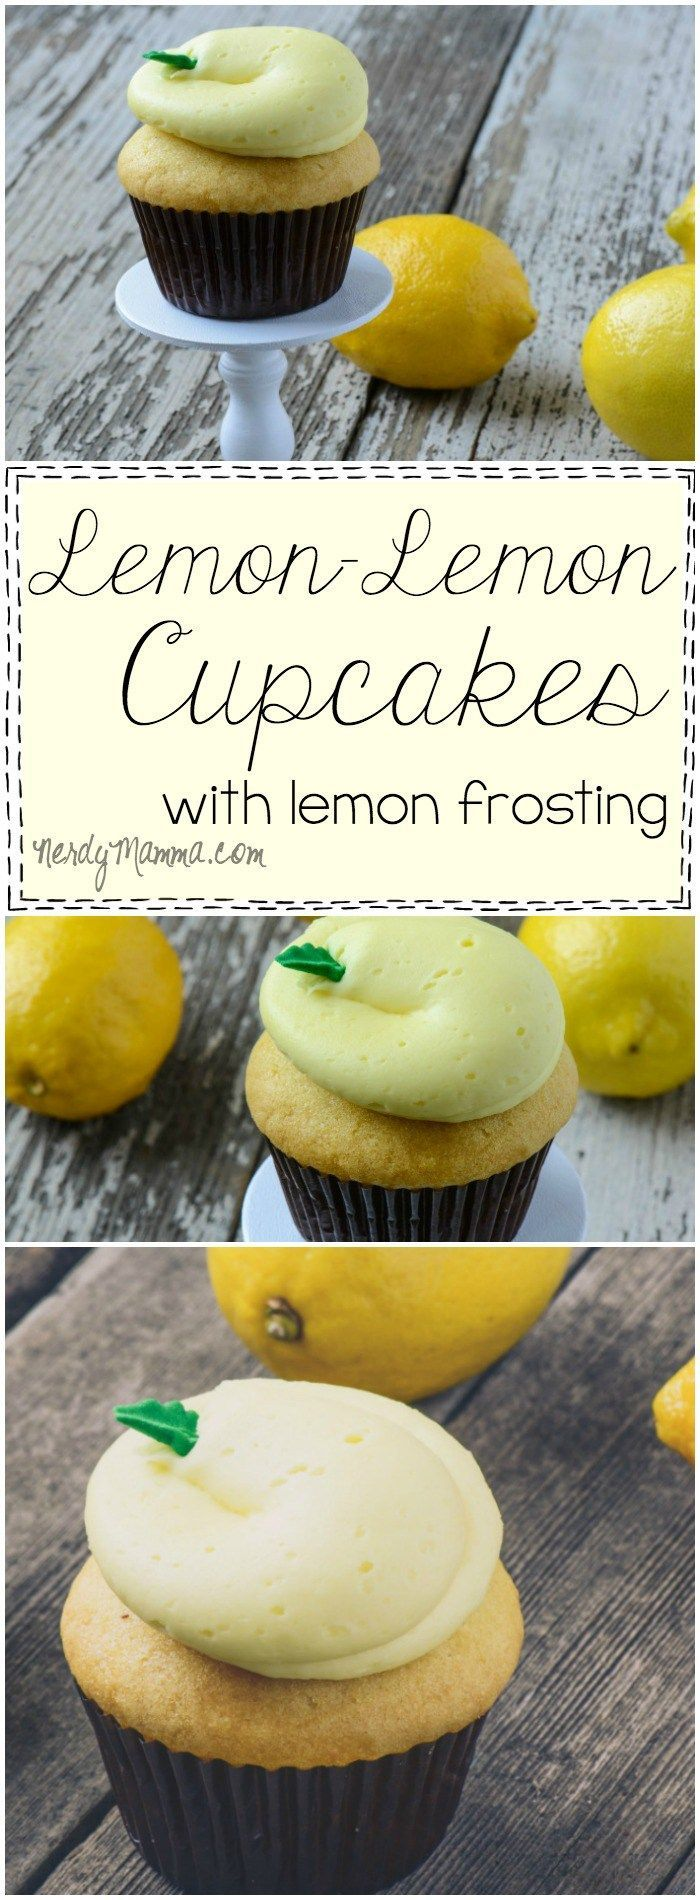 What a PERFECT summer cupcake recipe! I love lemon and these Double Lemon Cupcakes sound wonderful.